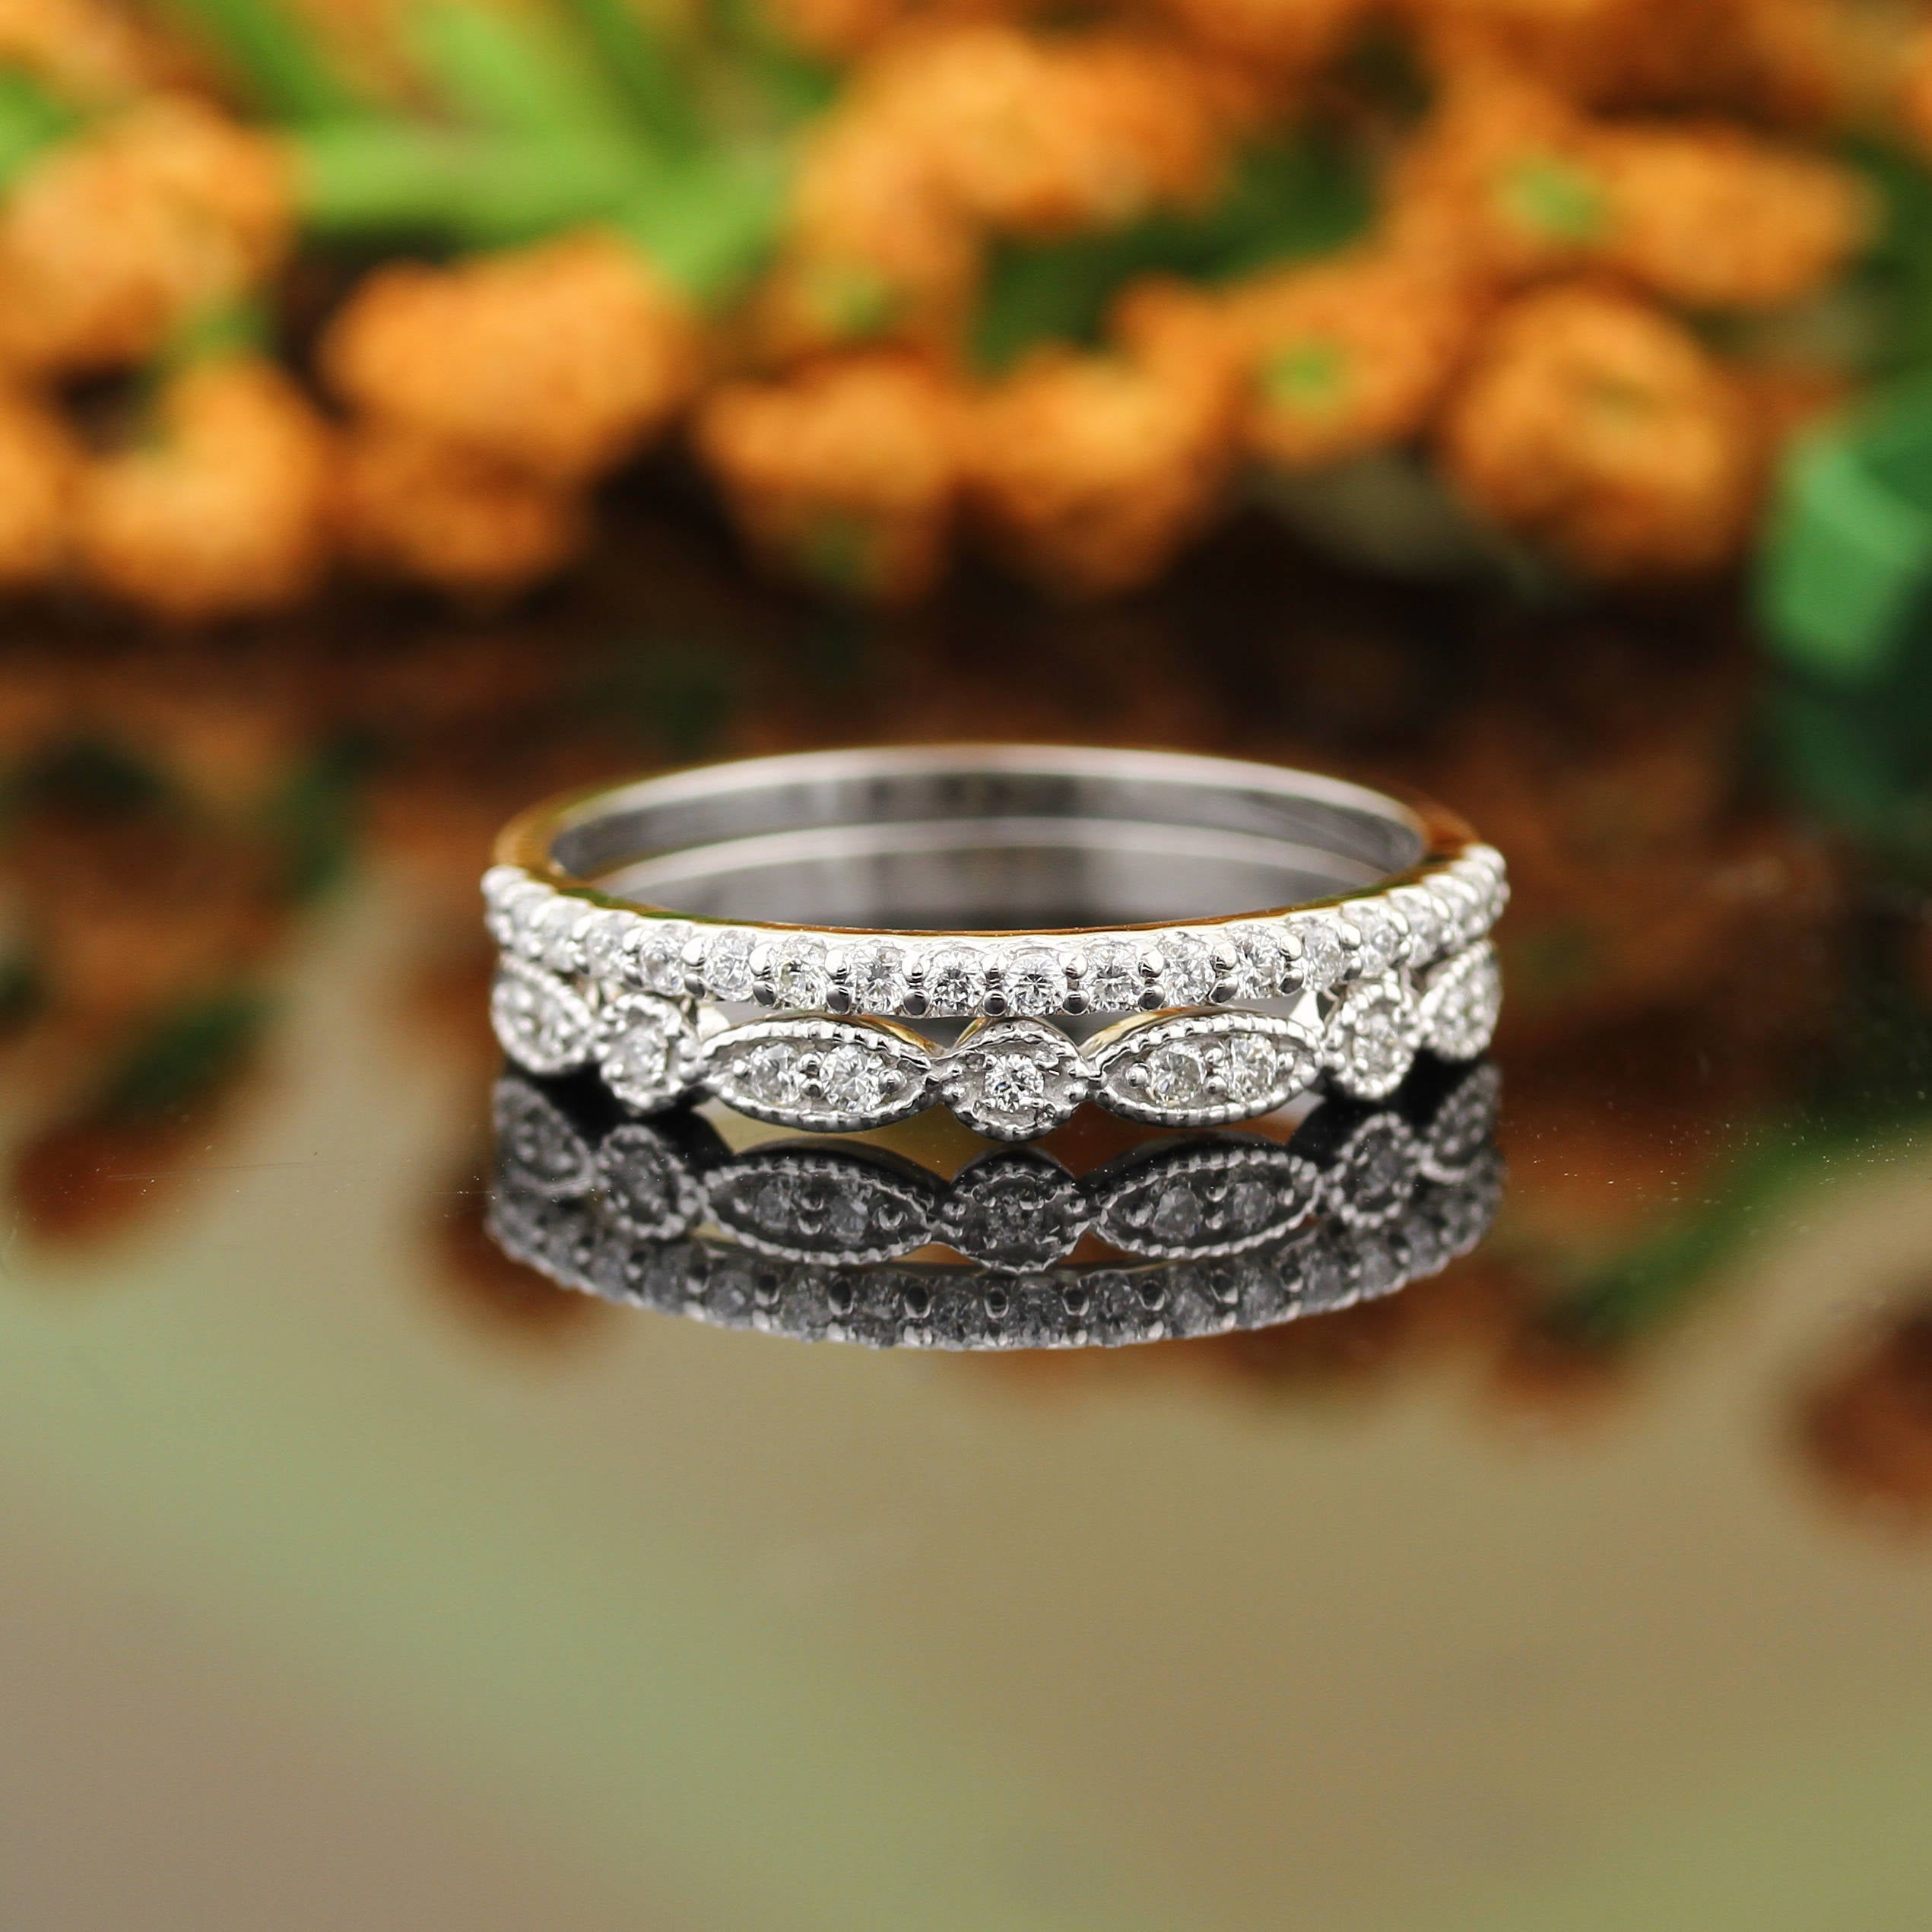 Art Deco Antique Style Diamond Milgrain Anniversary Ring Throughout Most Recent Diamond Art Deco Inspired Anniversary Bands In White Gold (View 9 of 25)